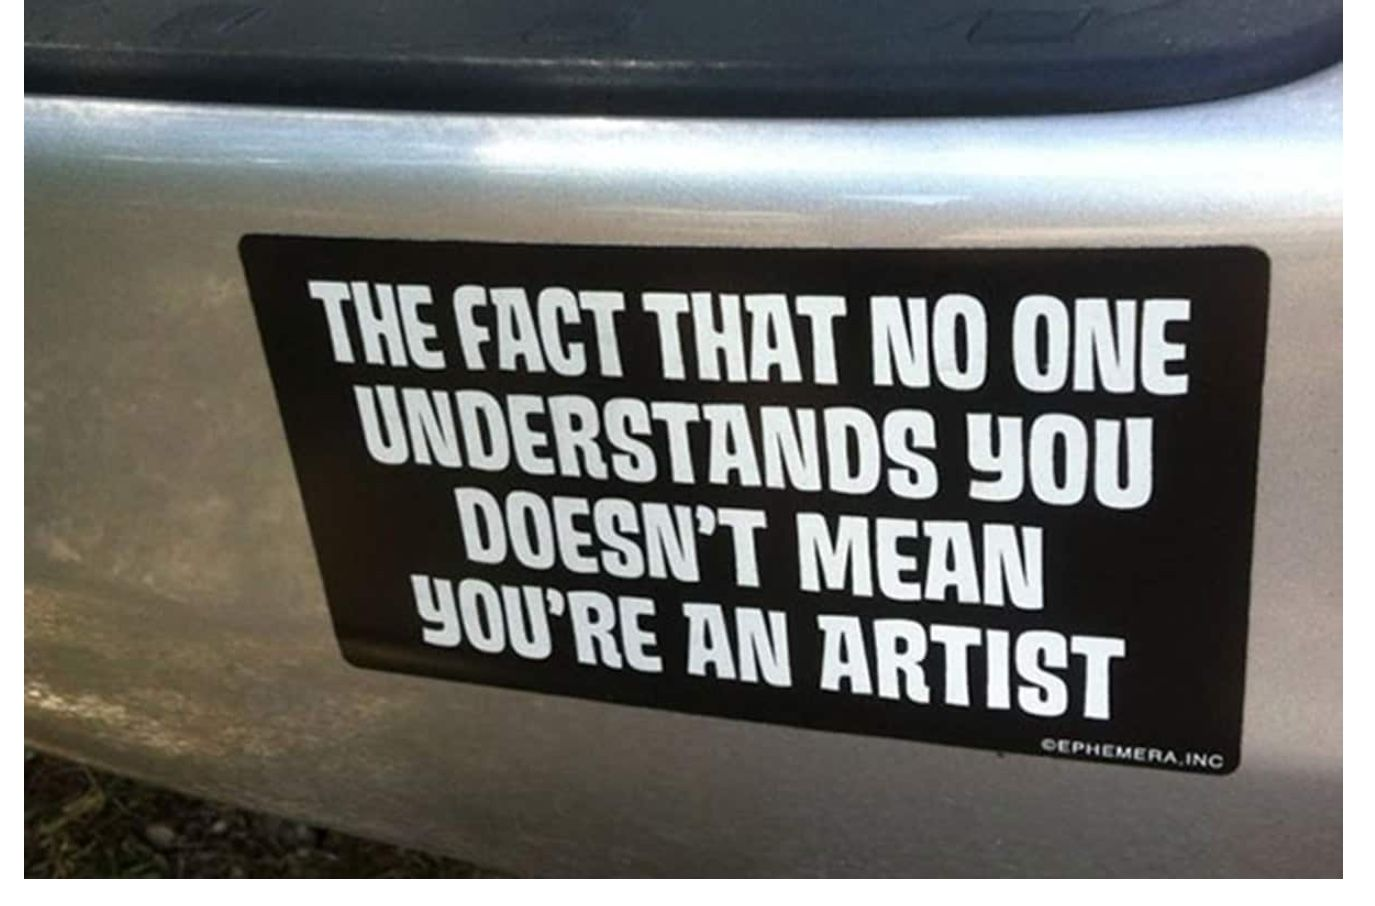 Pin By Dee On Wt Funny Funny Bumper Stickers Bumper Stickers Bumpers [ 906 x 1375 Pixel ]